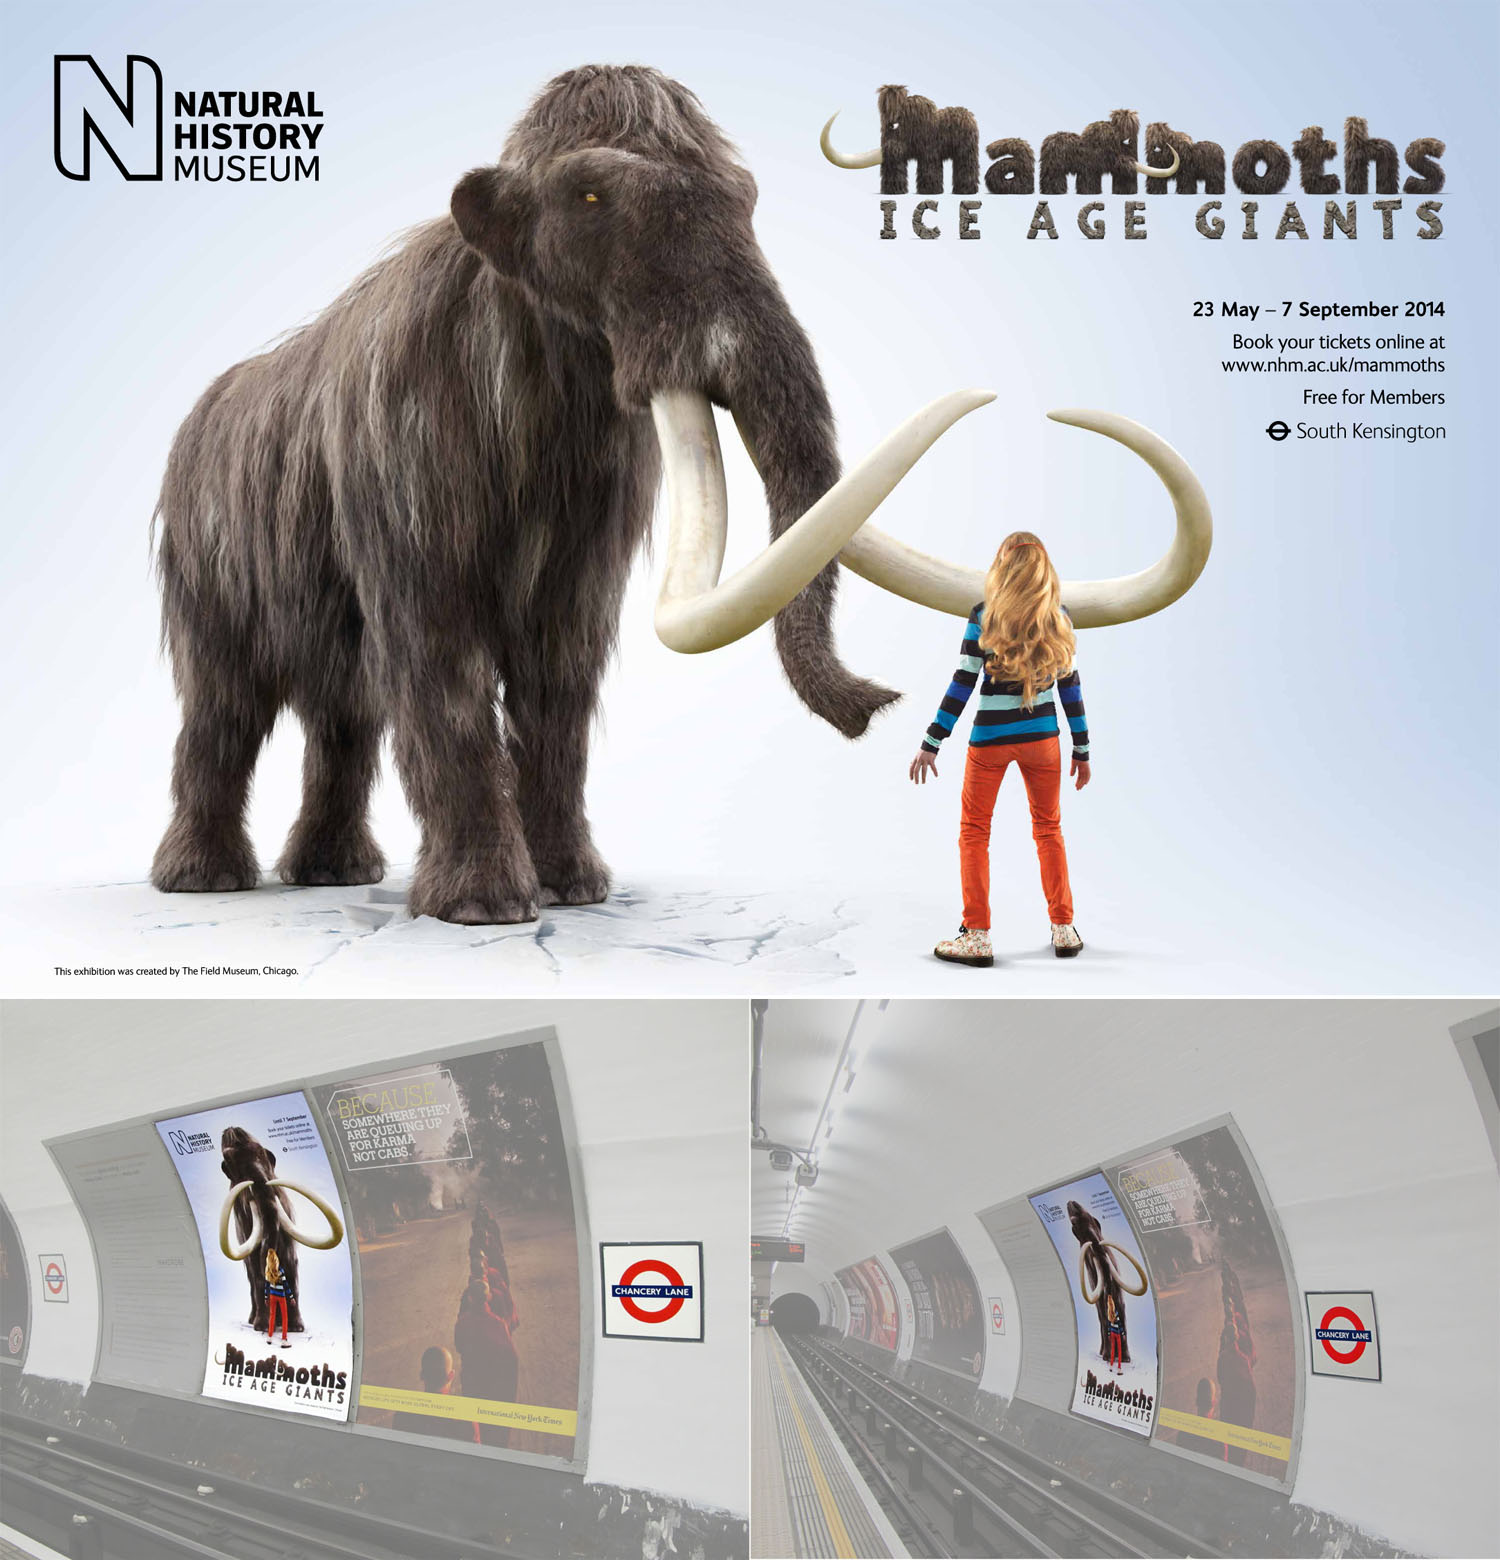 Natural History Museum of London / Mammoths website / 2014